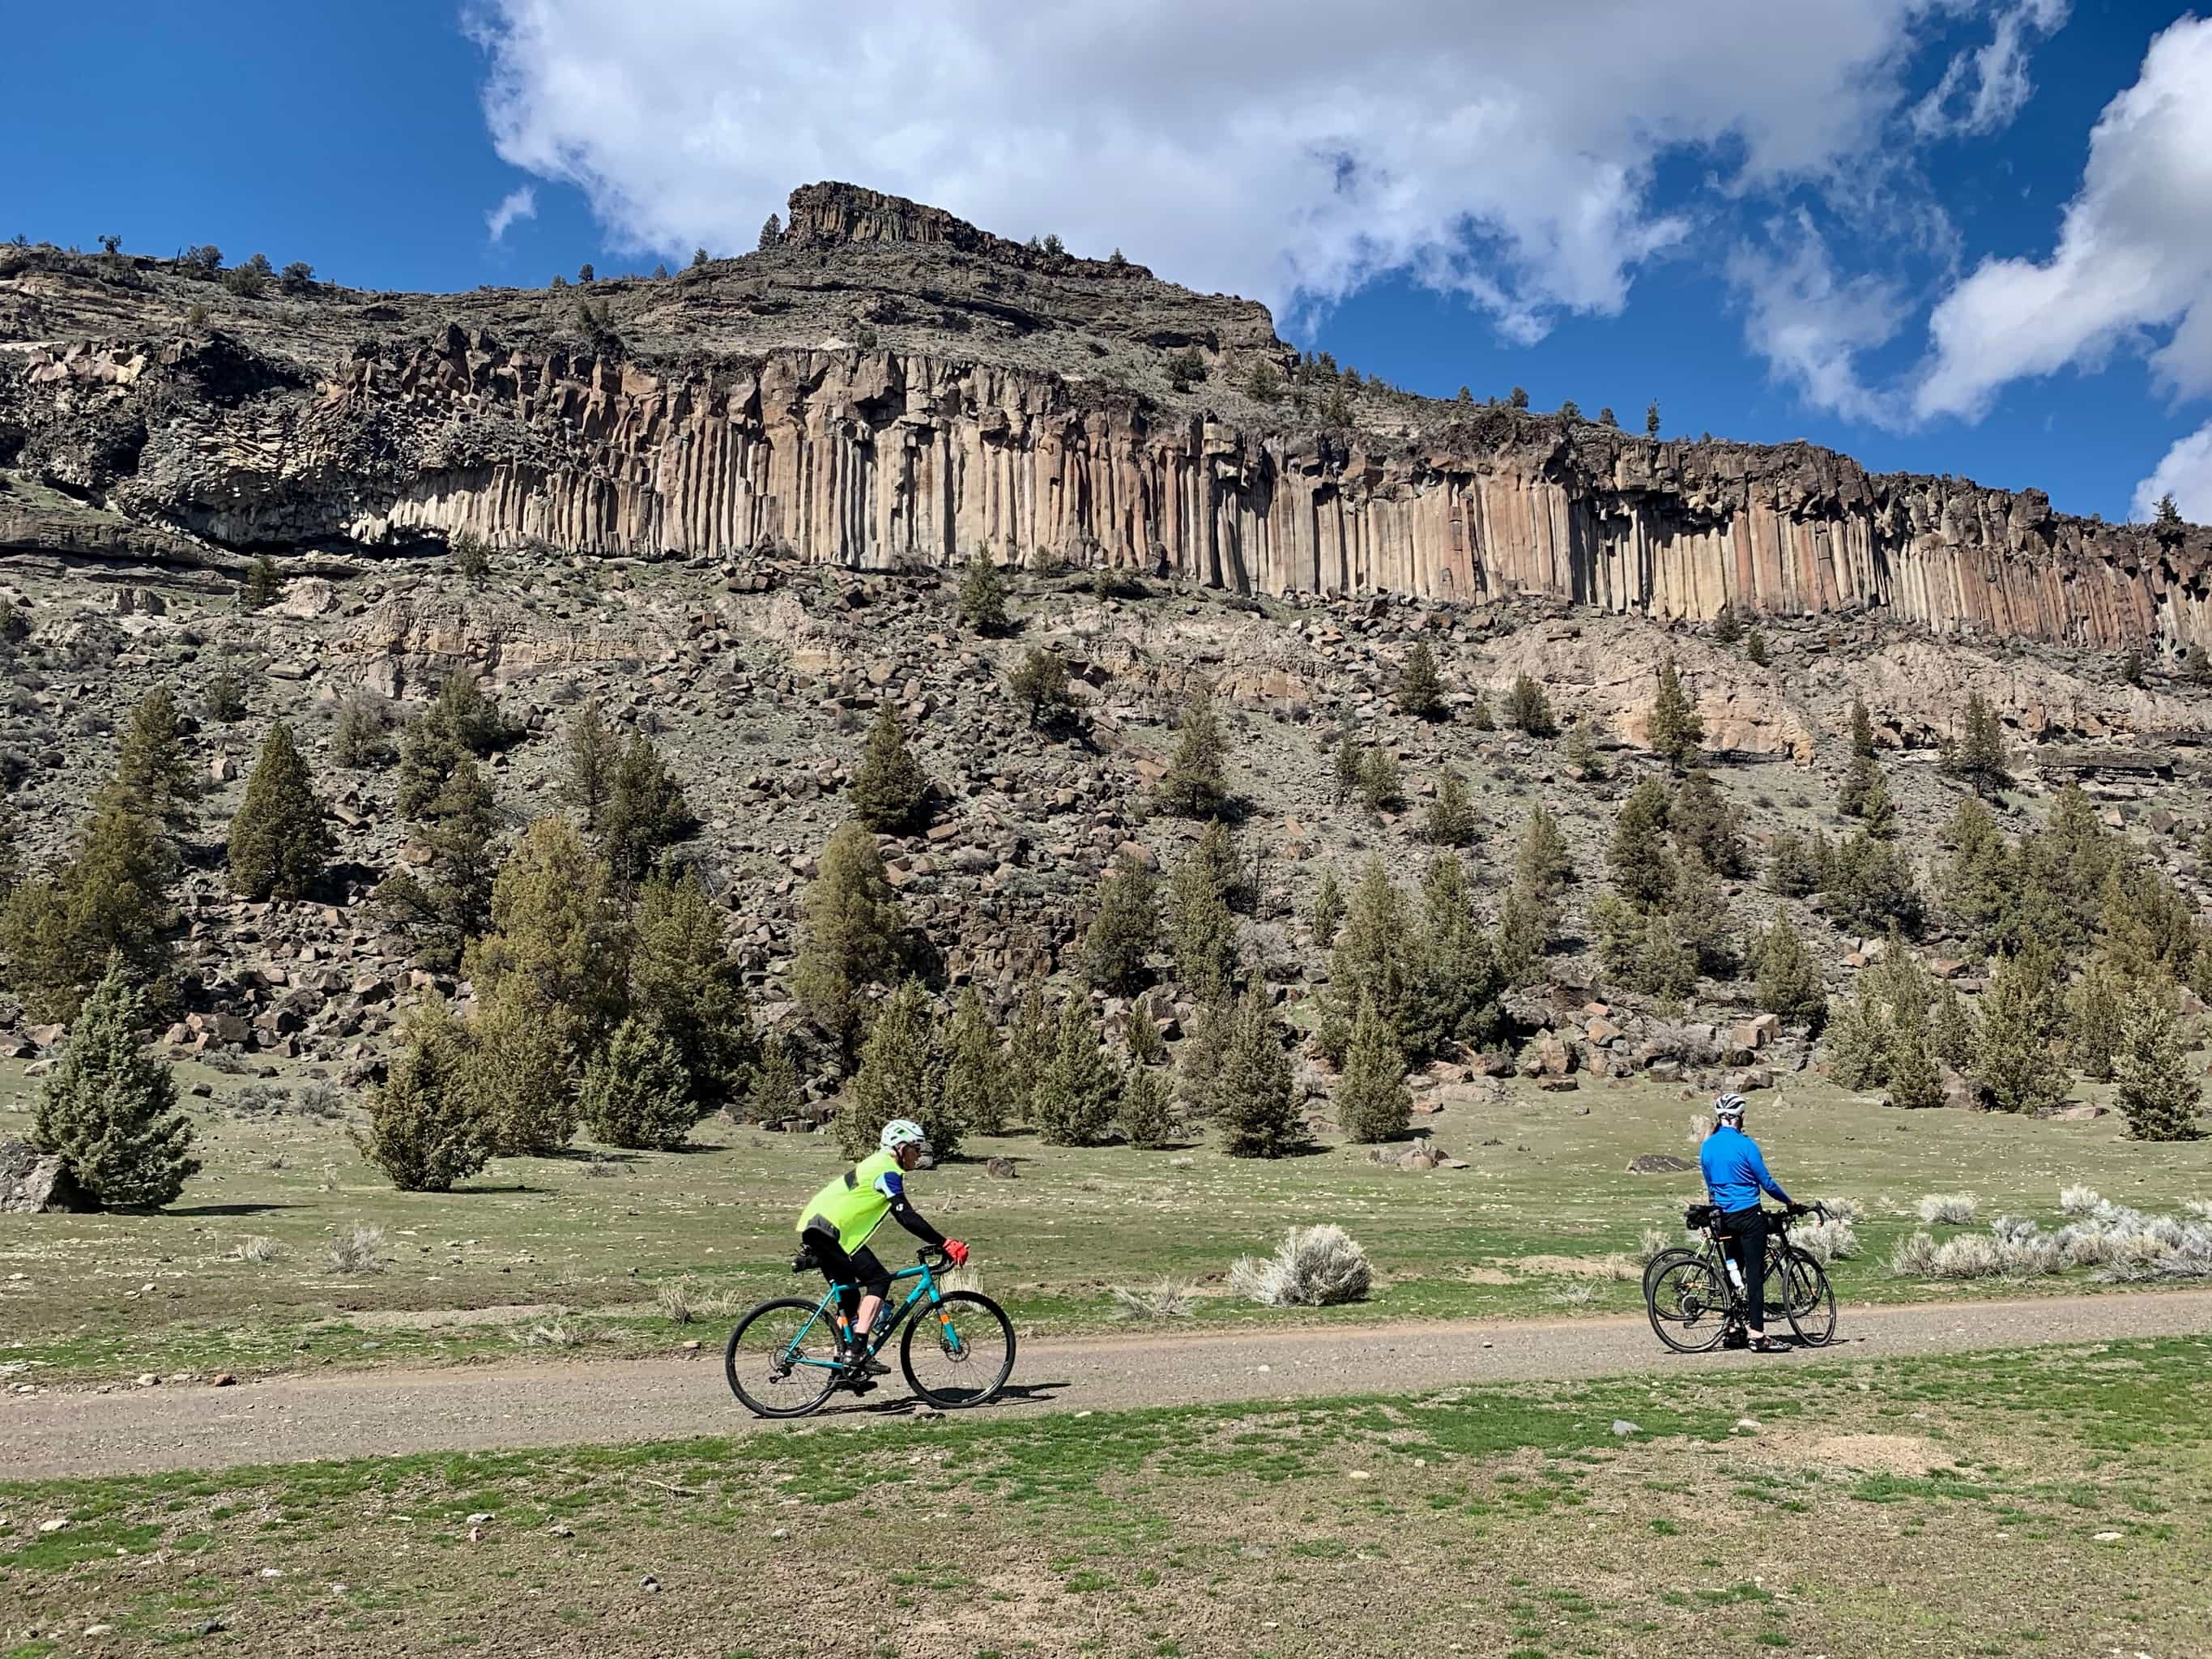 Cyclists on gravel road with basalt cliffs in background near Lake Simtustus.